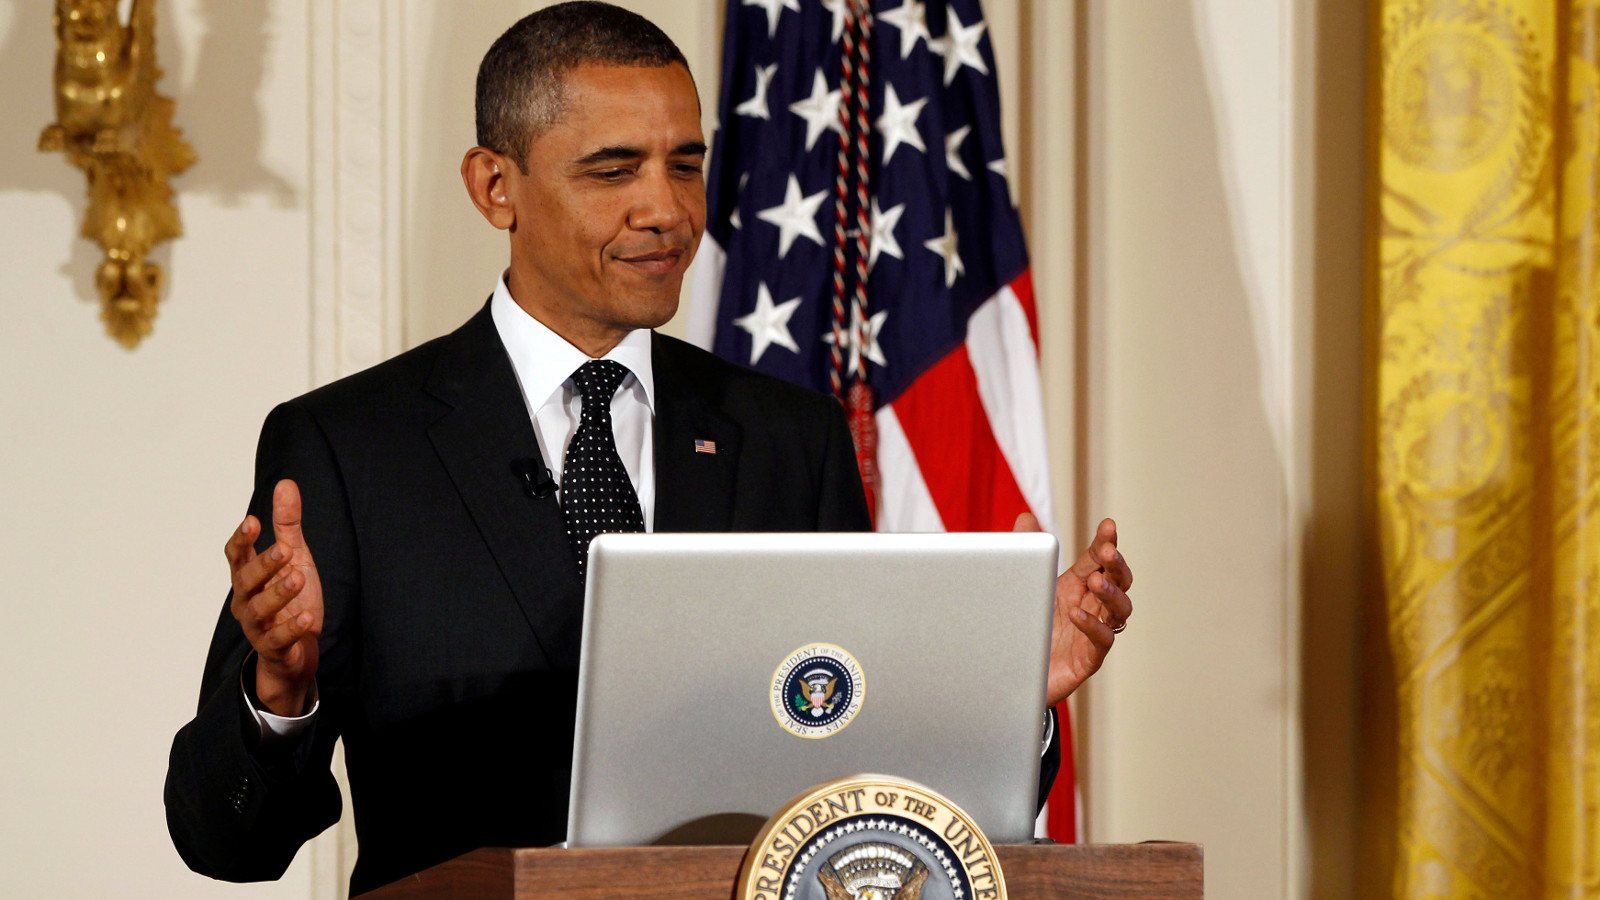 U.S. President Barack Obama reacts after tweeting at his first ever Twitter Town Hall in the East Room at the White House in Washington, July 6, 2011.